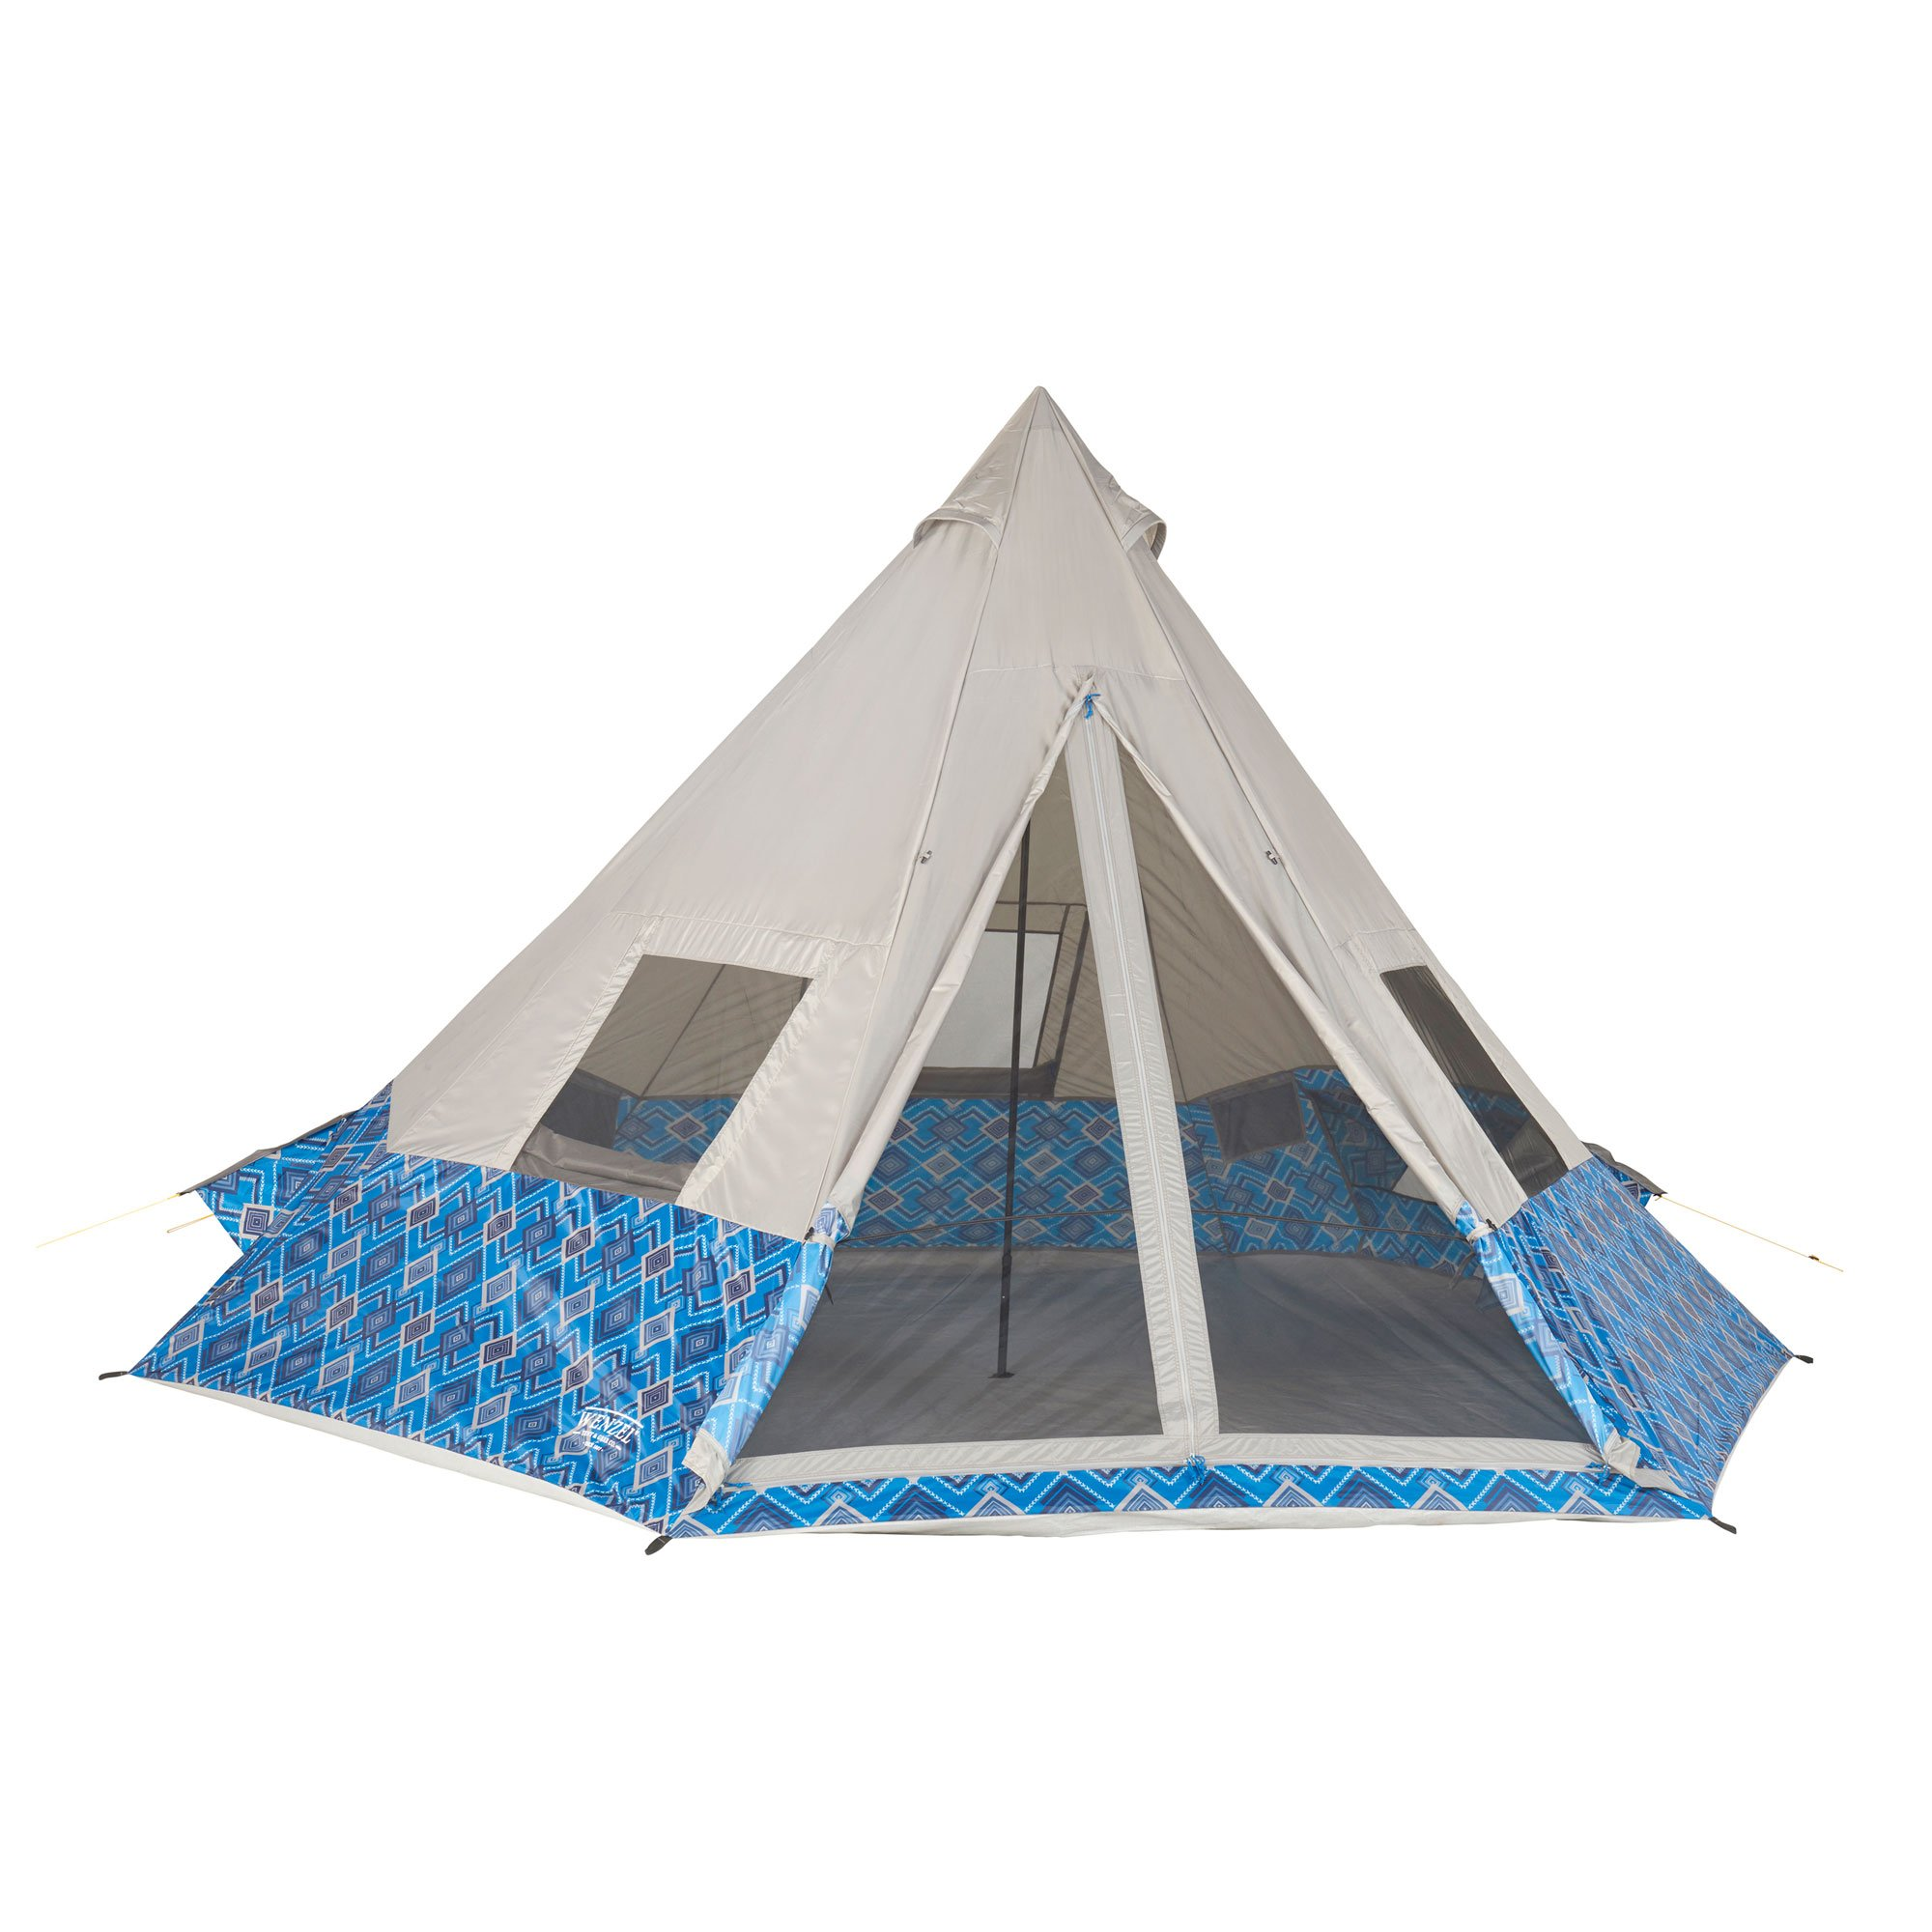 Wenzel Shenanigan 8-Person Teepee Camping Tent